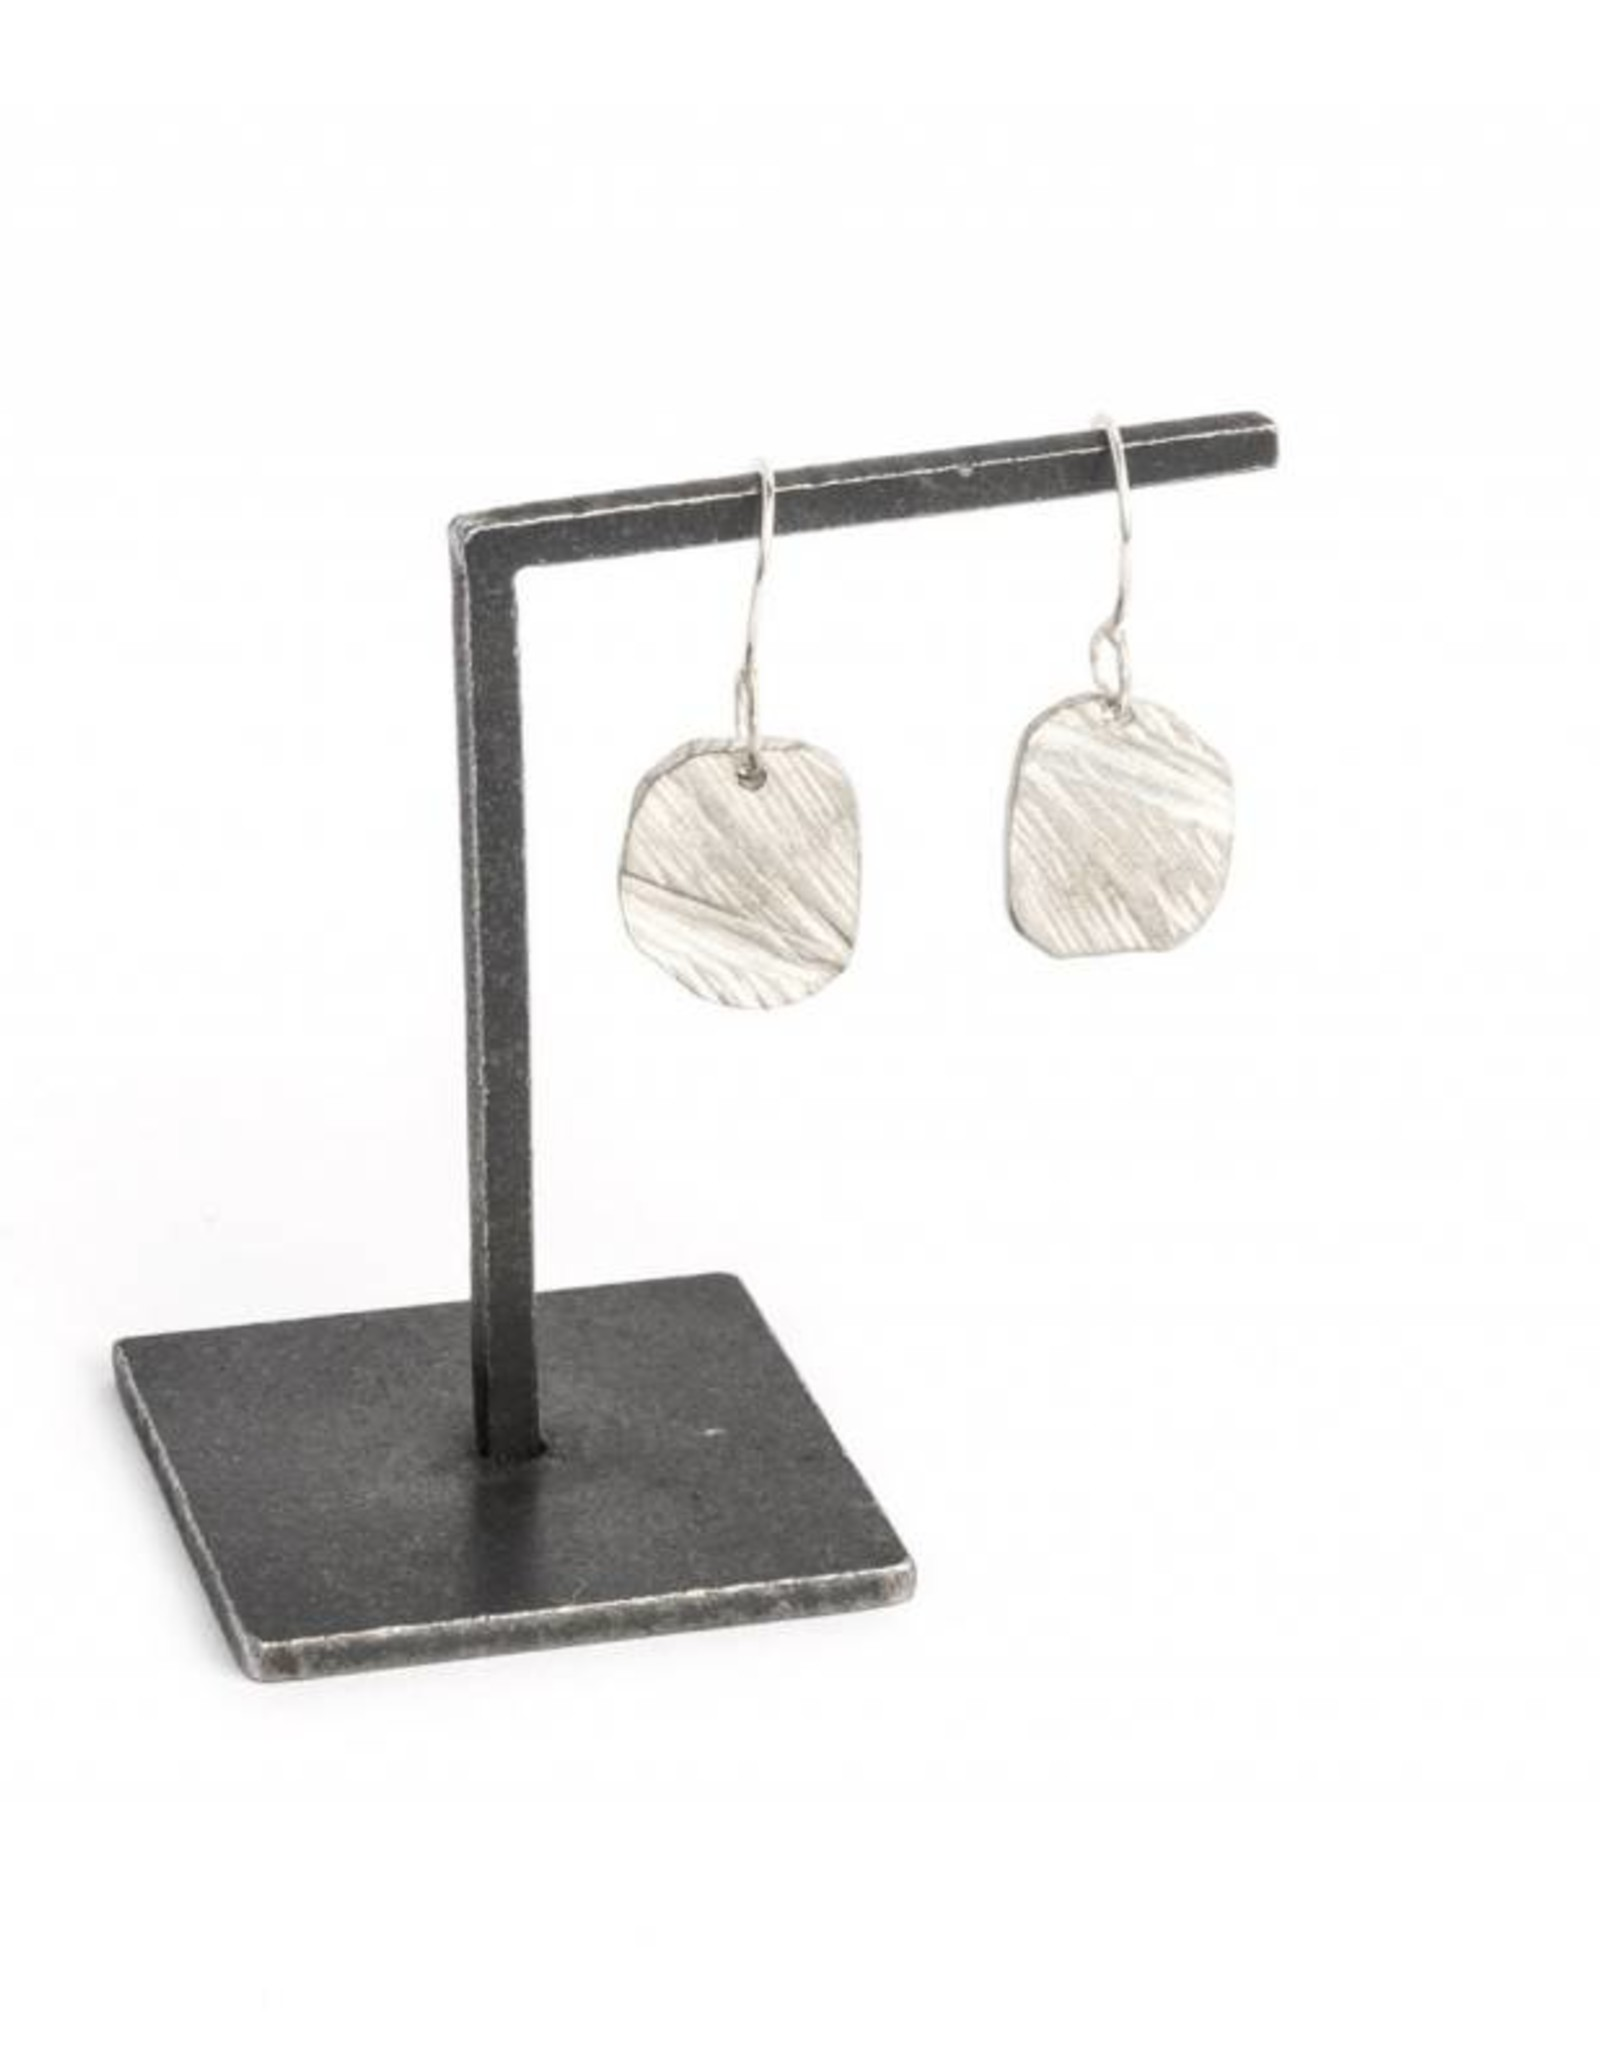 Chikahisa Studio Elemental Square Drop Earrings - Sterling Silver